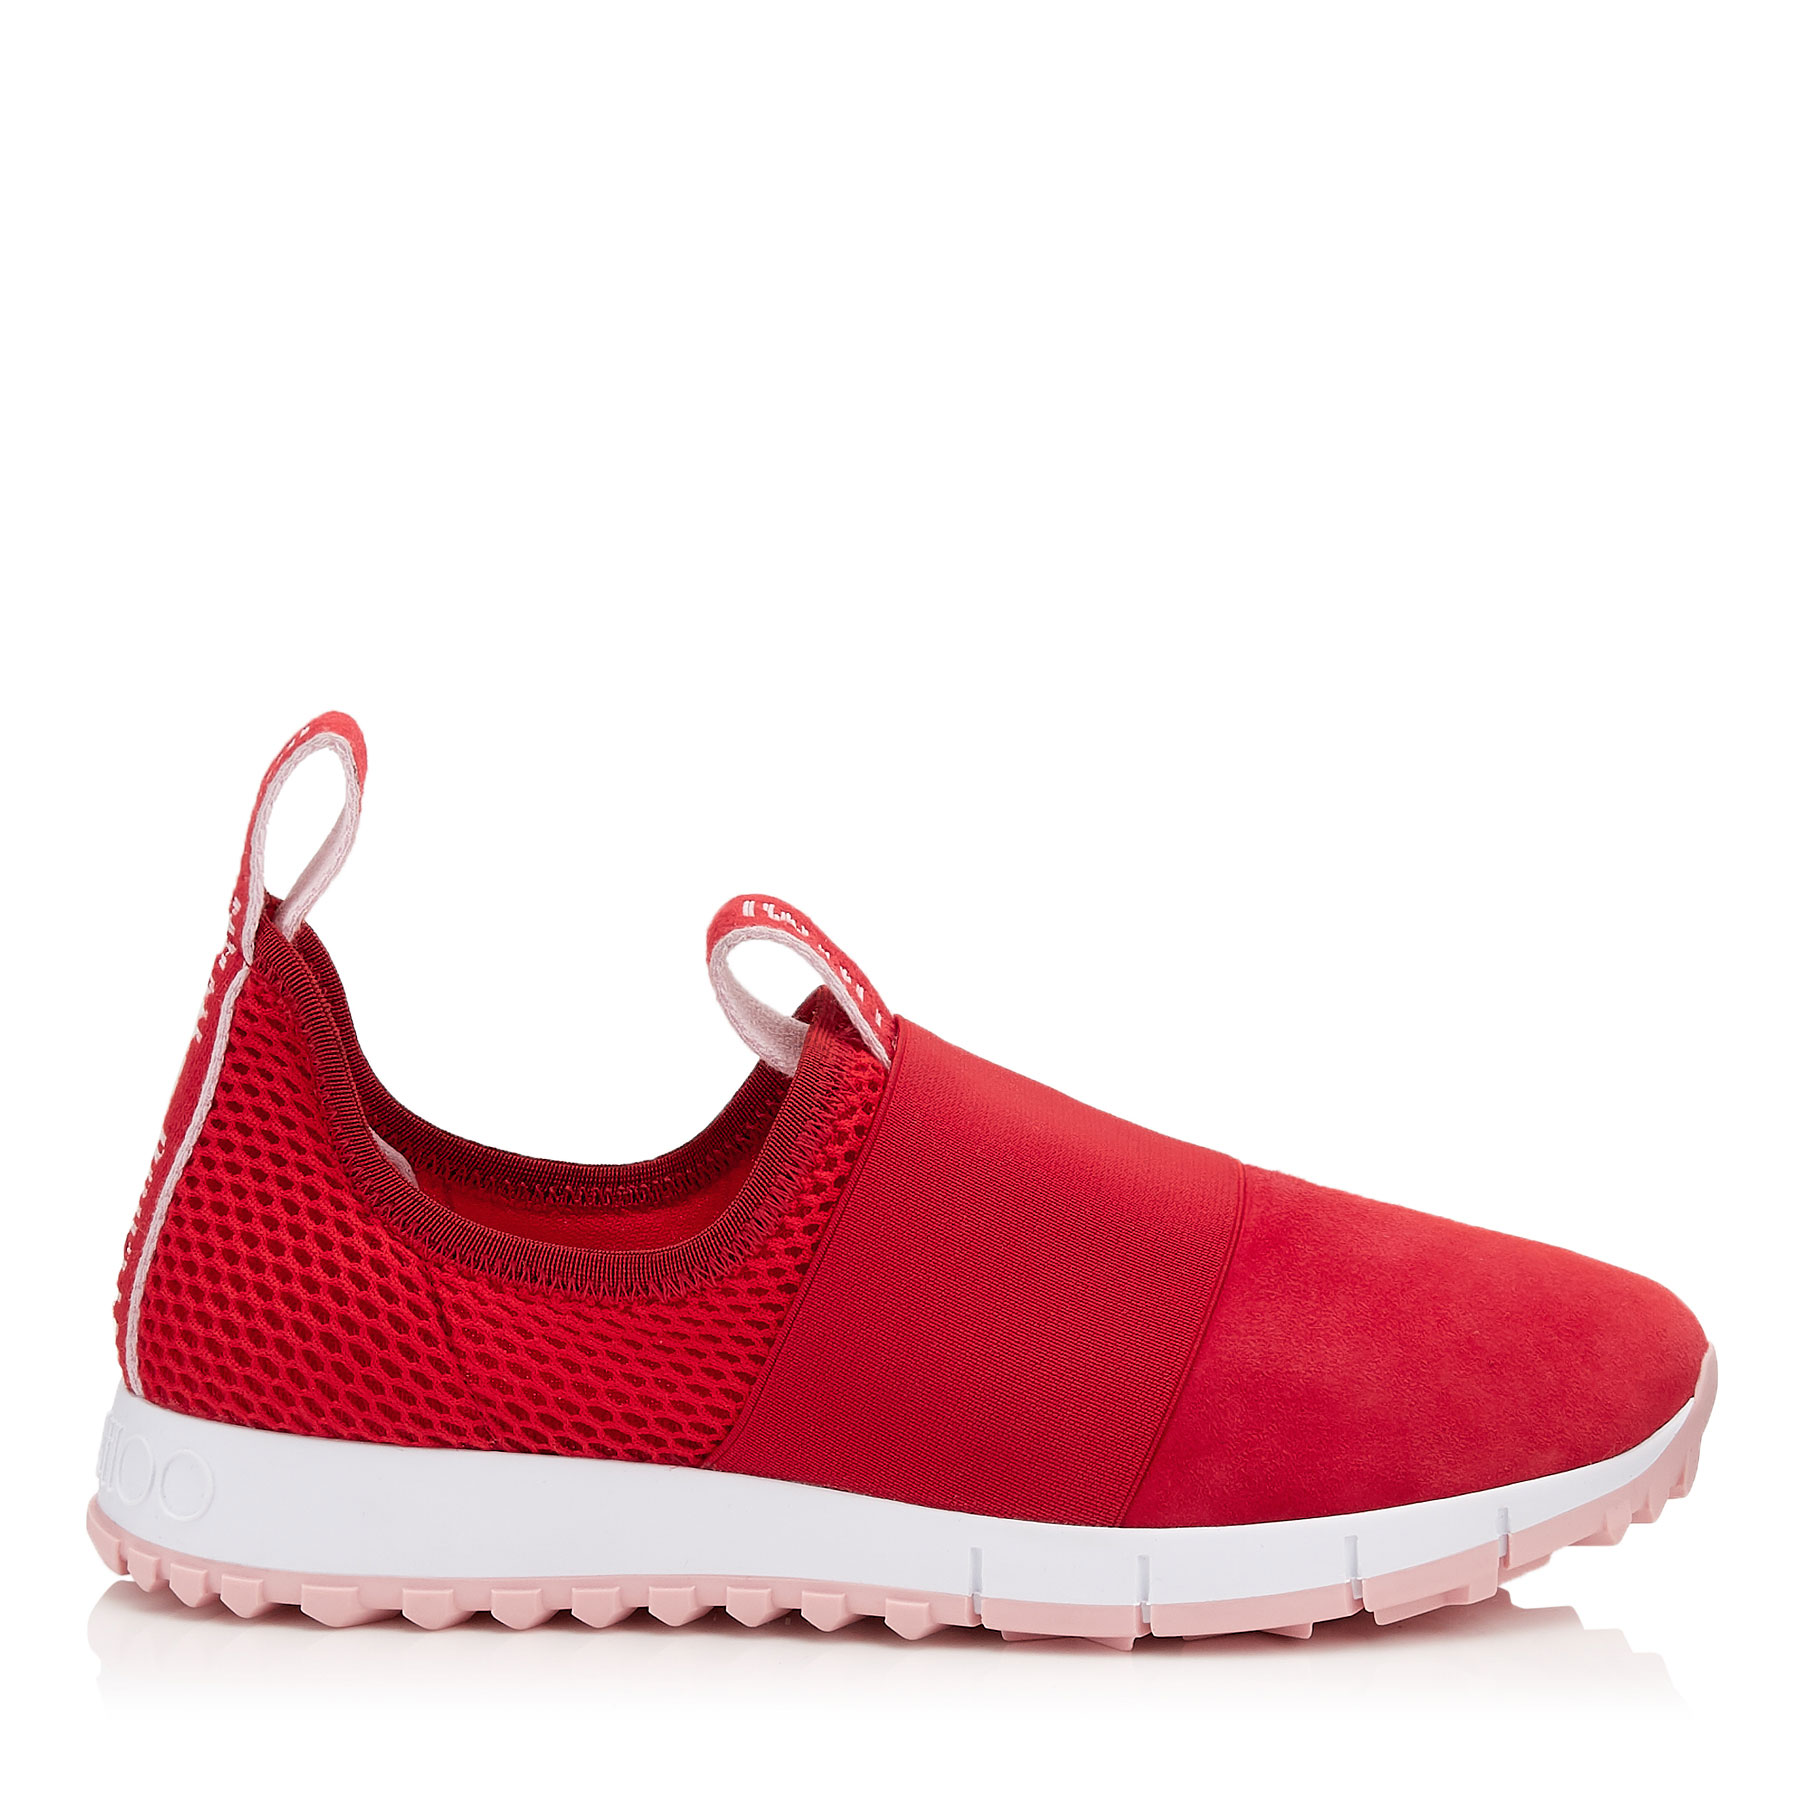 OAKLAND/F Red Mesh and Suede Trainers by Jimmy Choo